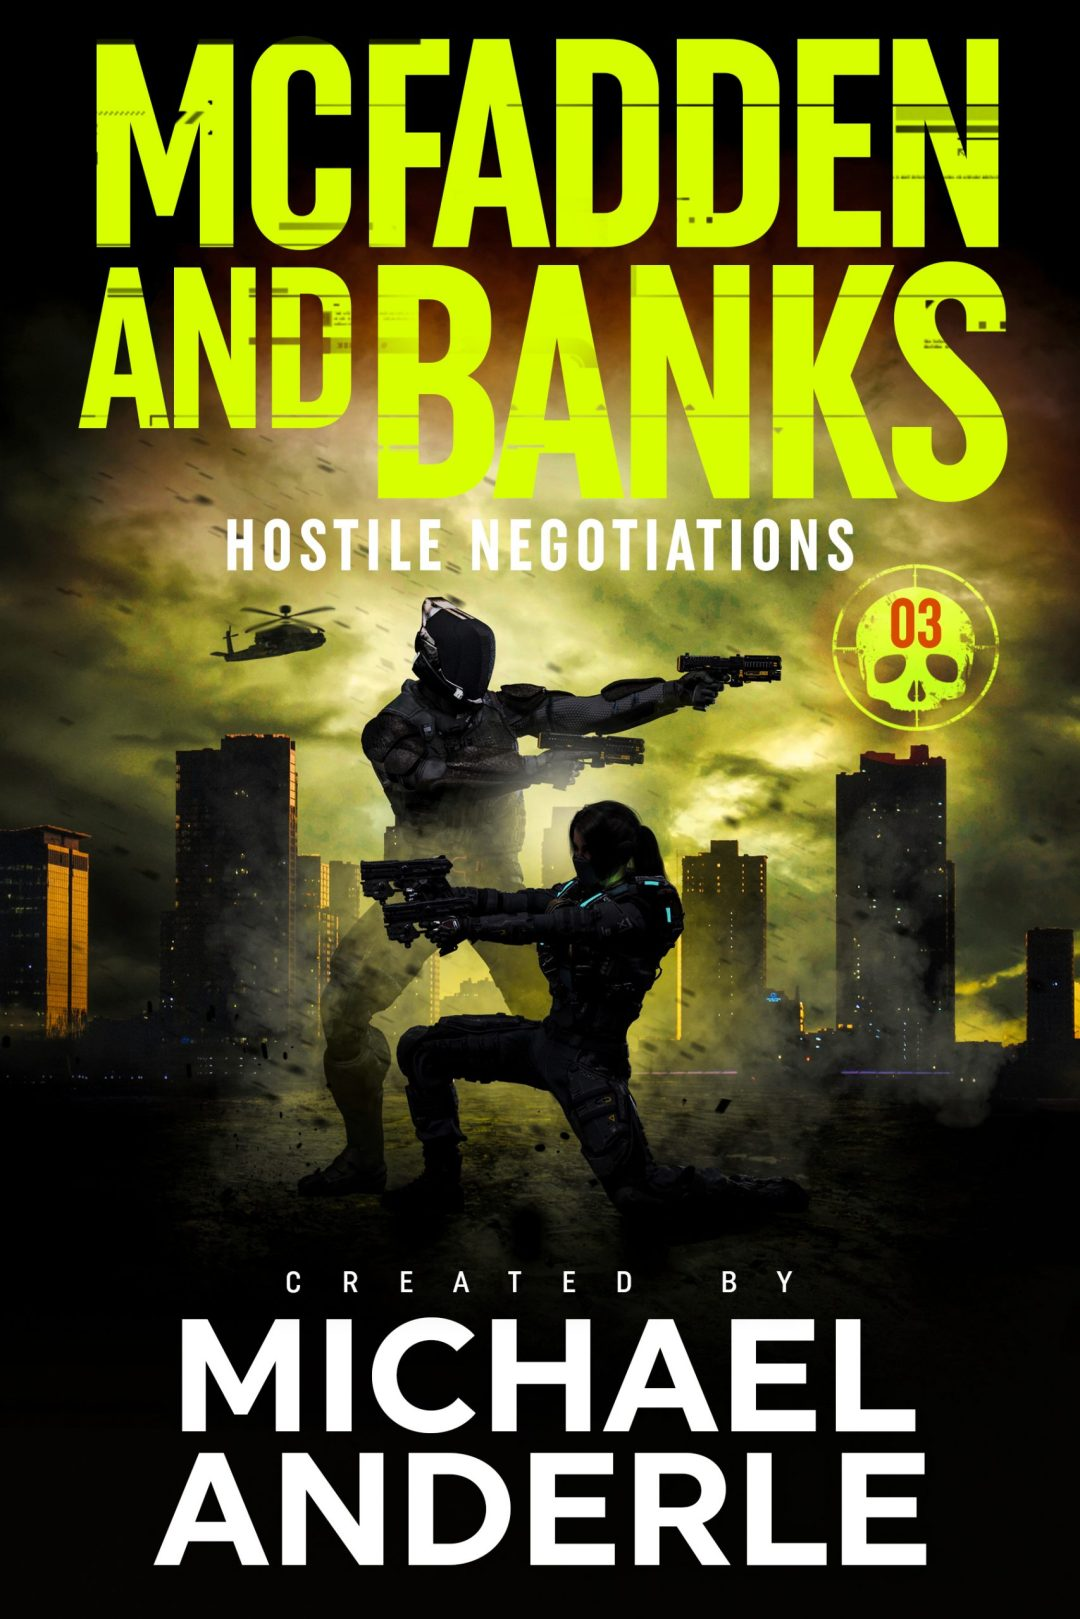 Hostile Negotiations e-book cover